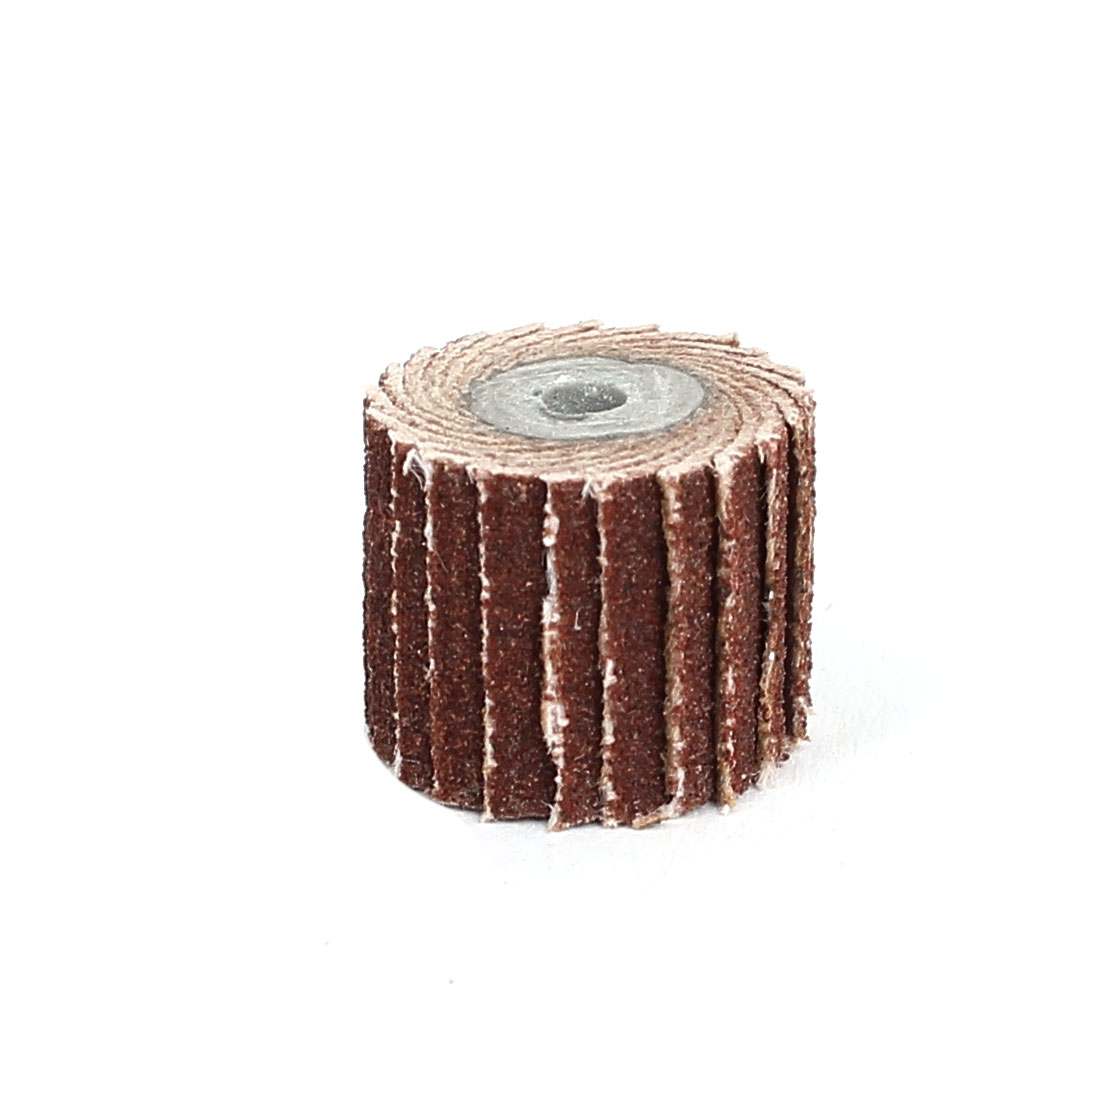 13mmx11mm Sandpaper Grinding Mounted Point Flap Wheel